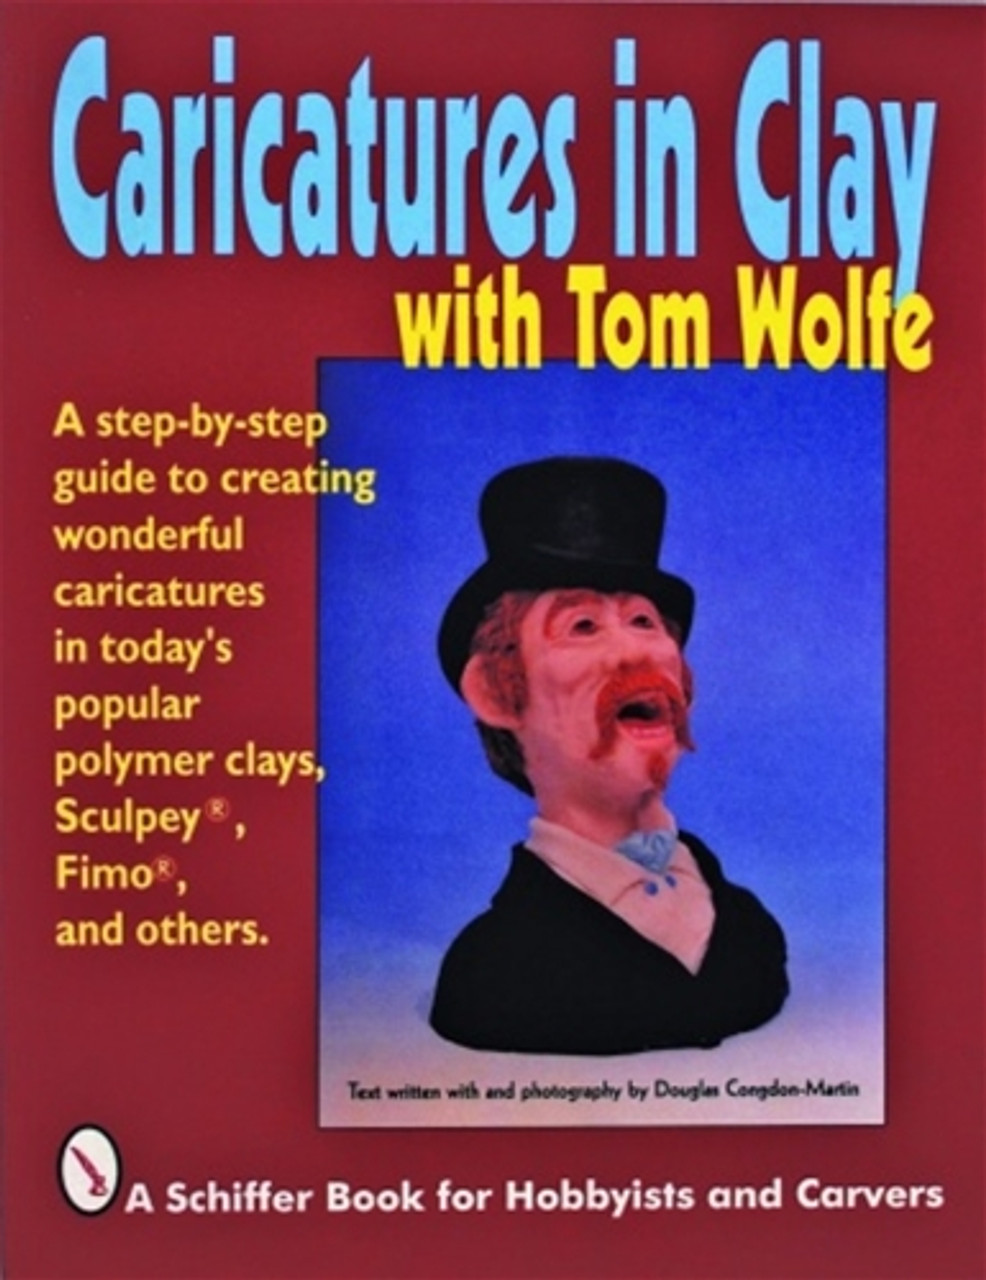 Caricatures In ClayCaricatures in Clay with Tom Wolfe